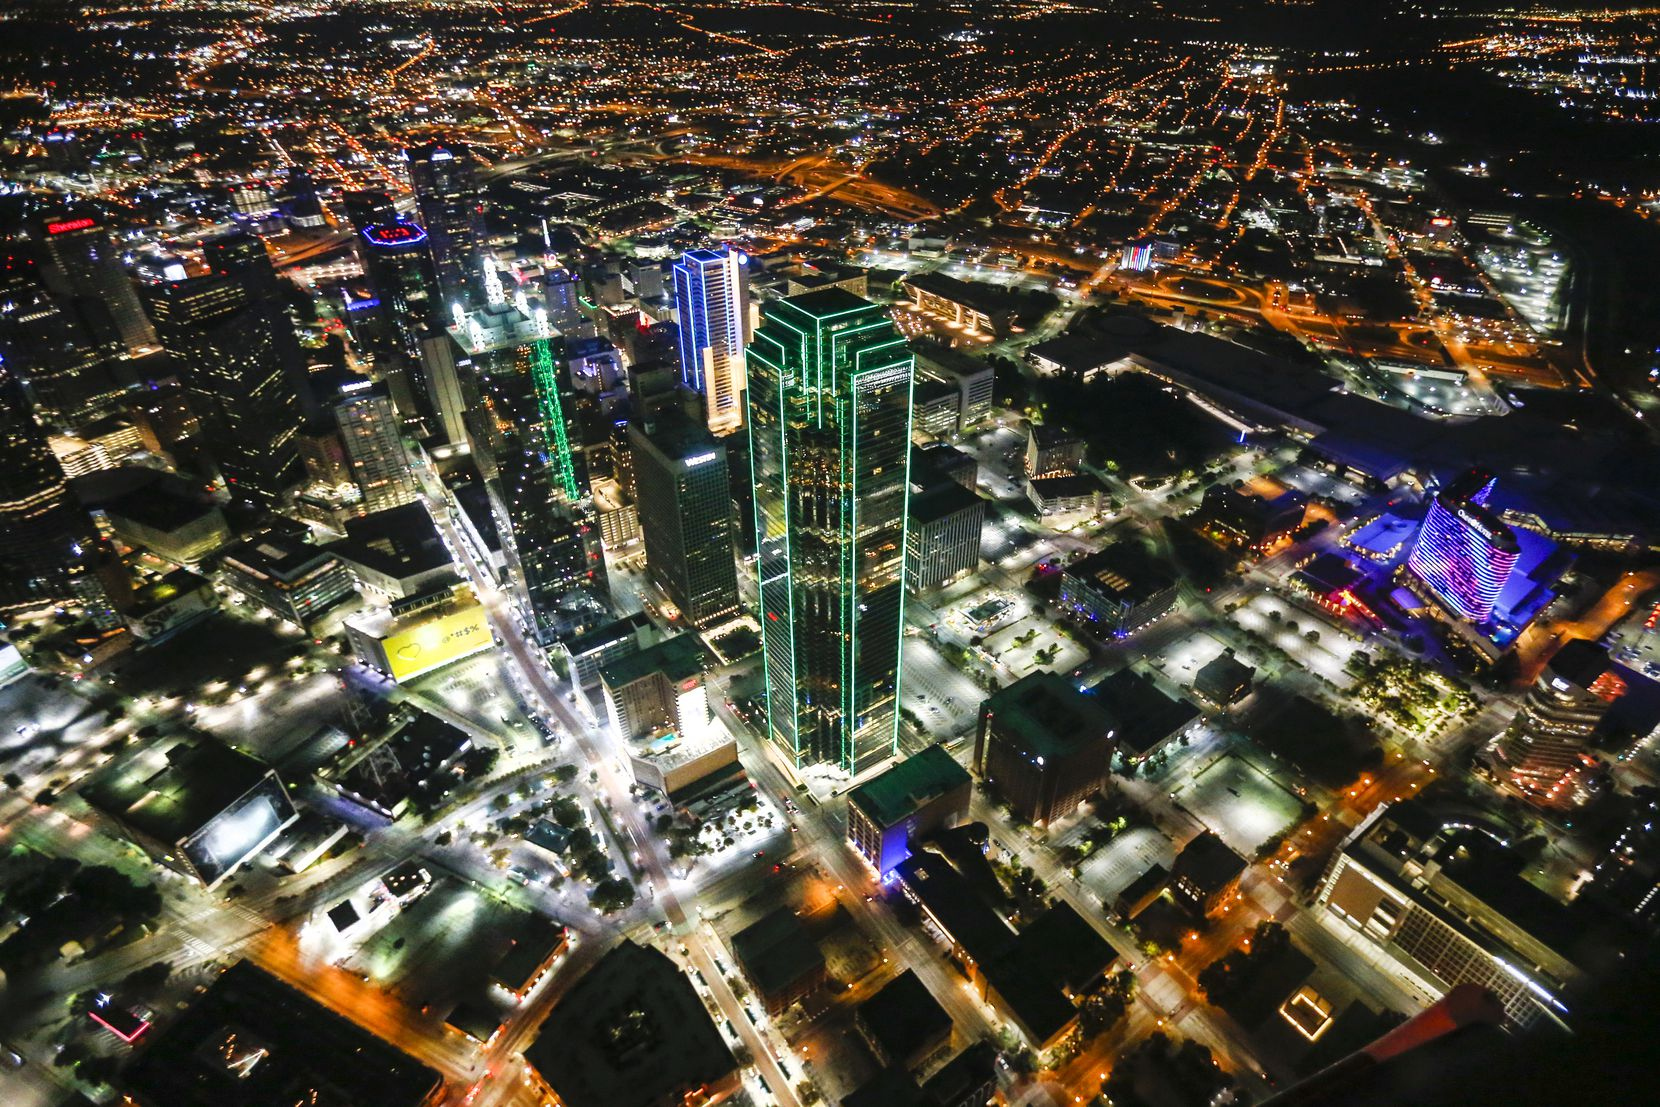 Air One gets a bird's eye view of the Dallas skyline while answering one of the 600 to 700 calls it handles each month.